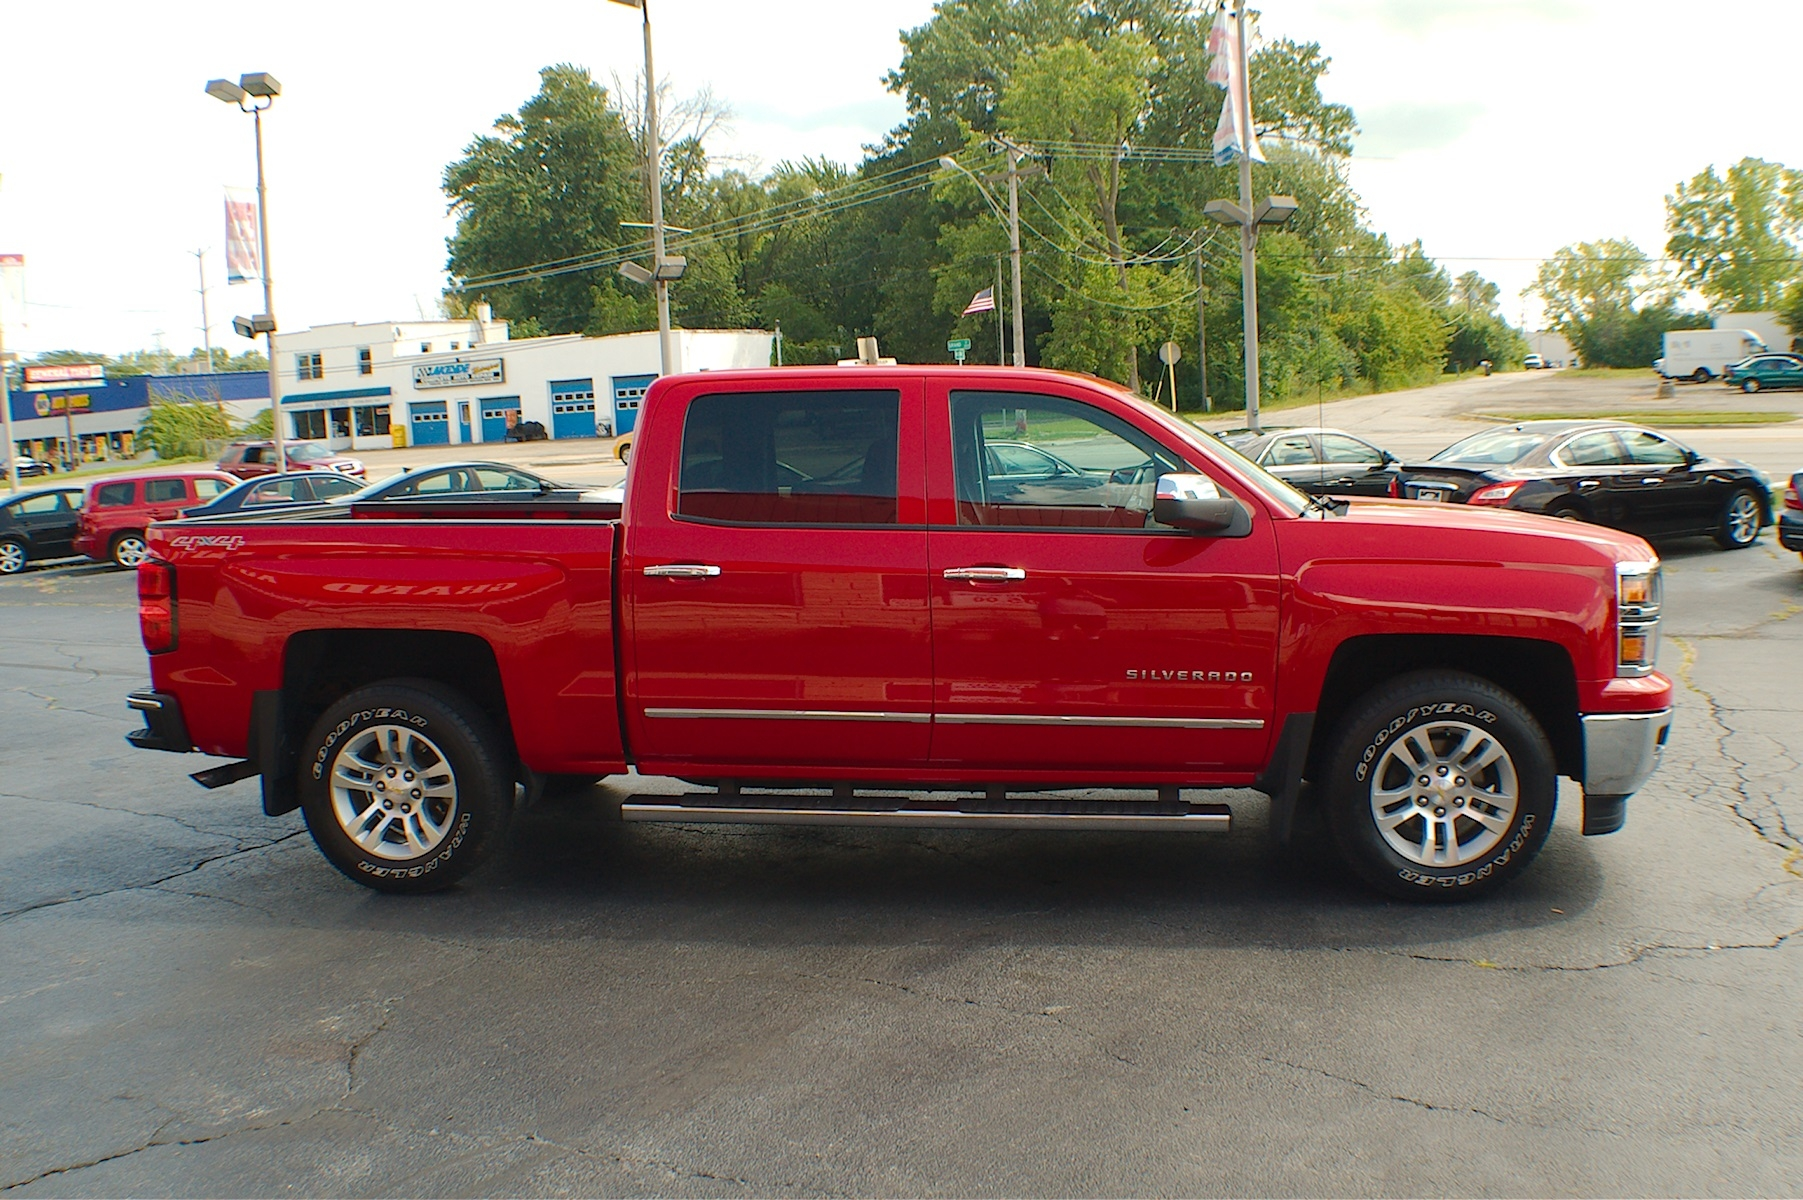 2014 Chevrolet Silverado LT Red Used Pickup Truck Sale Buffalo Grove Deerfield Fox Lake Antioch